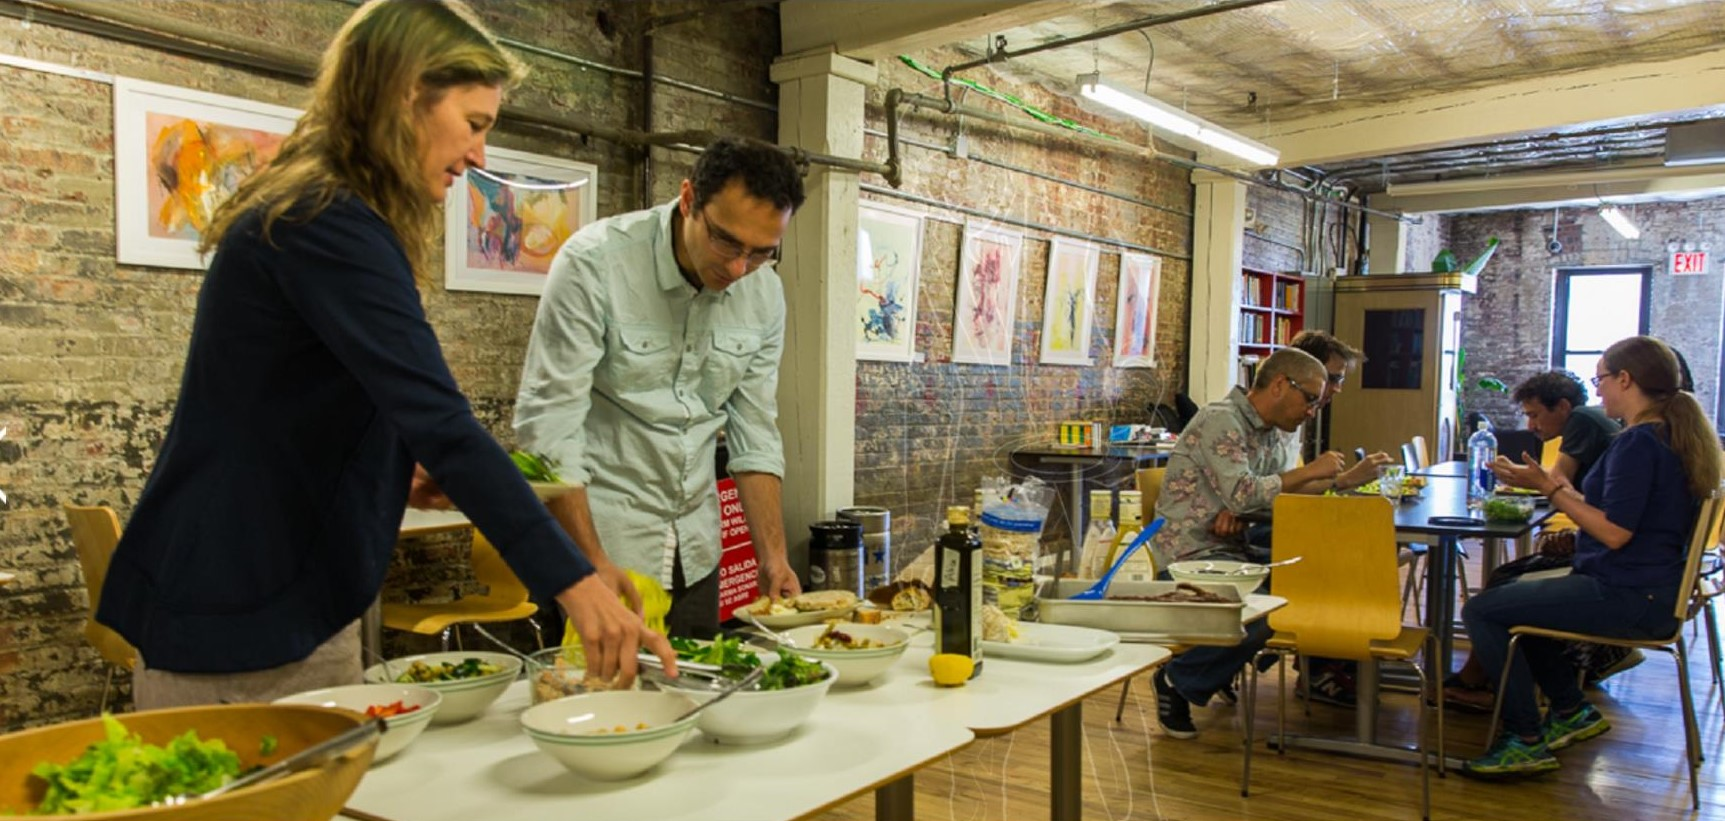 Wednesday Salad Days are an institution at Brooklyn Creative League. (photo Dave Pappas)